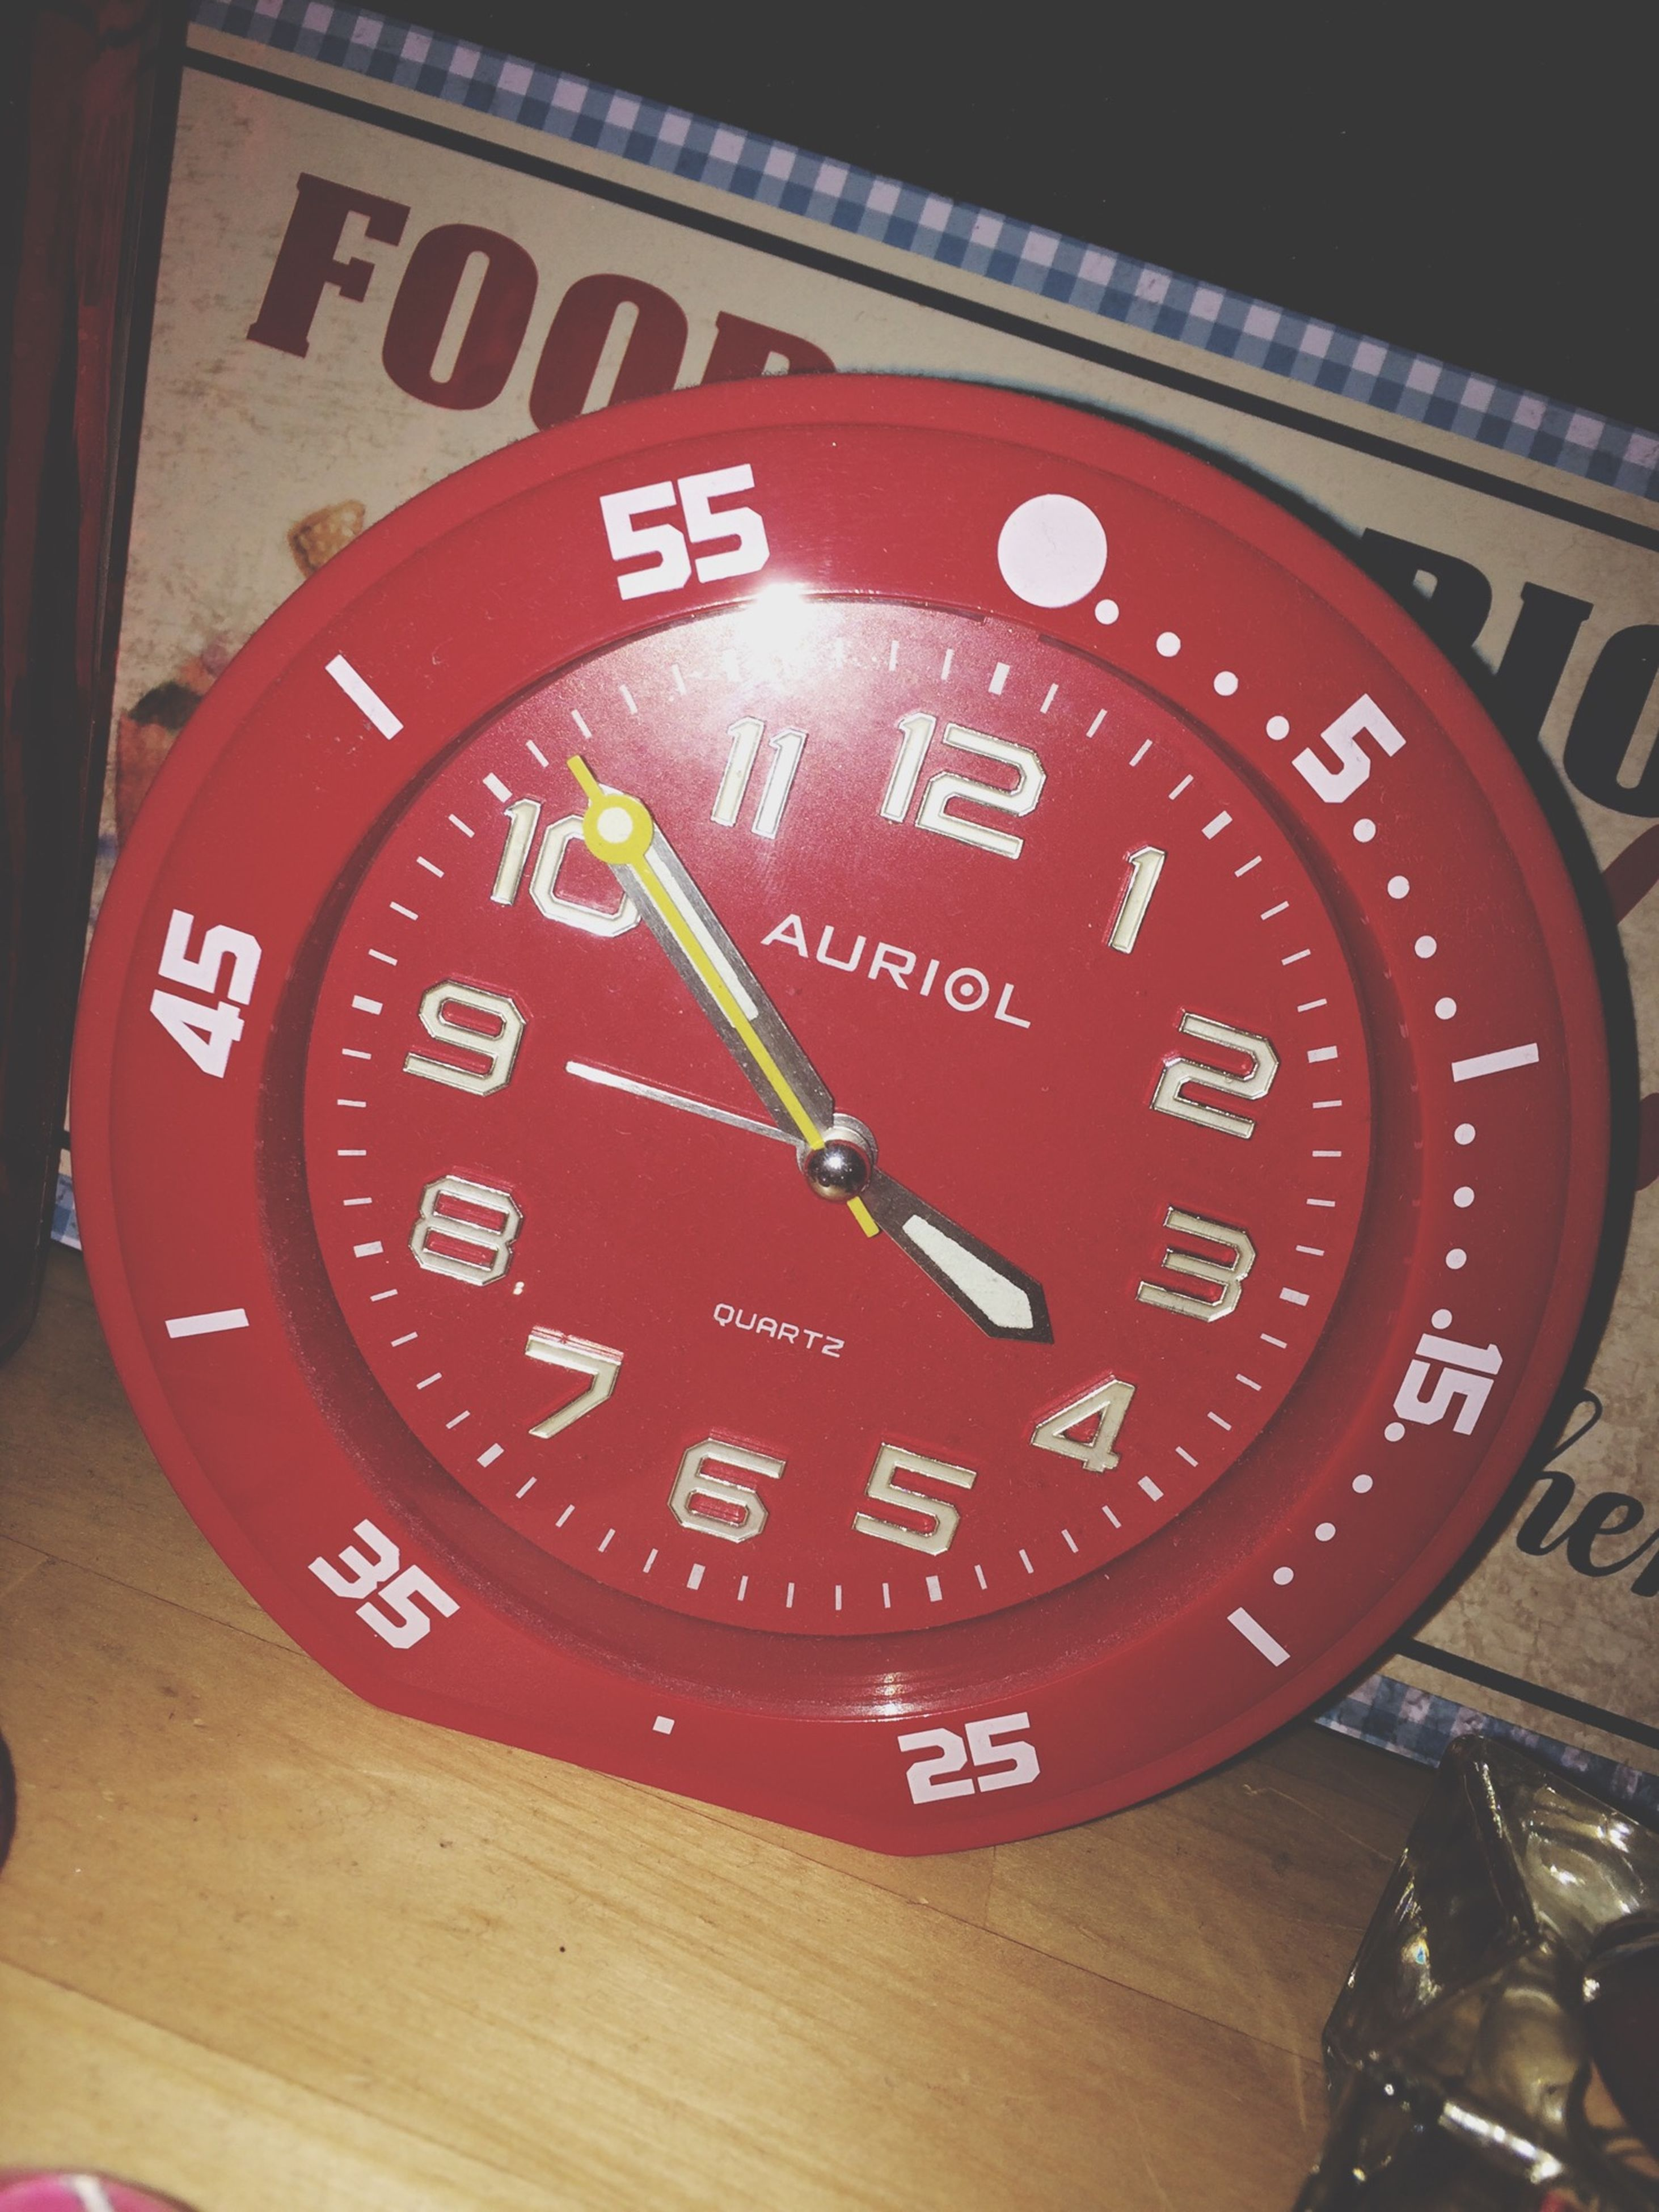 communication, text, number, western script, indoors, clock, close-up, time, technology, red, accuracy, capital letter, instrument of measurement, old-fashioned, telephone, speedometer, clock face, metal, retro styled, wall clock